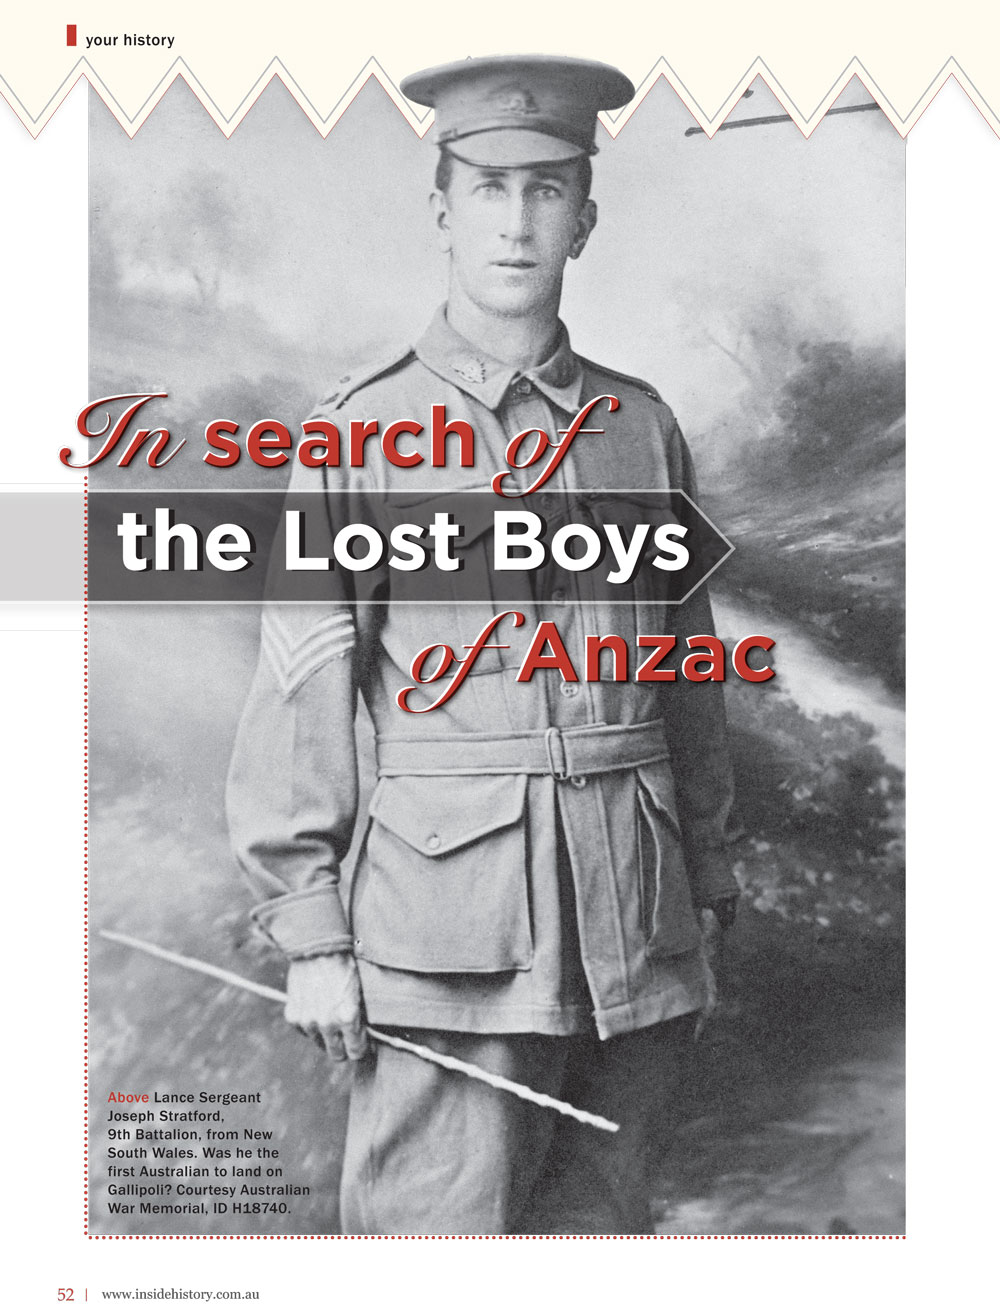 In-search-of-the-Lost-Boys-of-Anzac